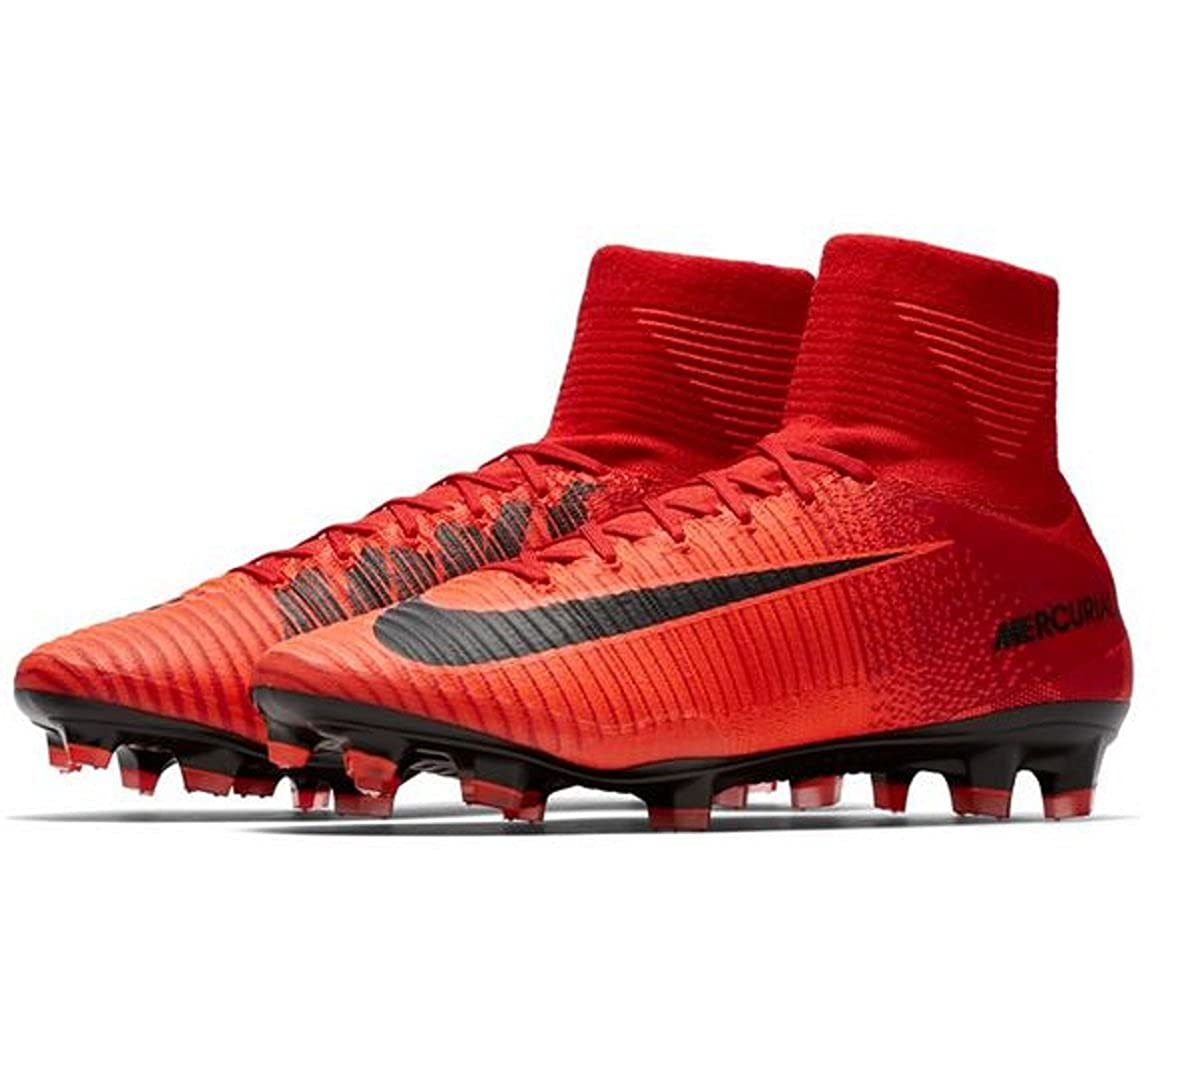 1ff466e91f75 Nike Men s Mercurial Superfly FG Soccer Cleat (Sz. 8) Red